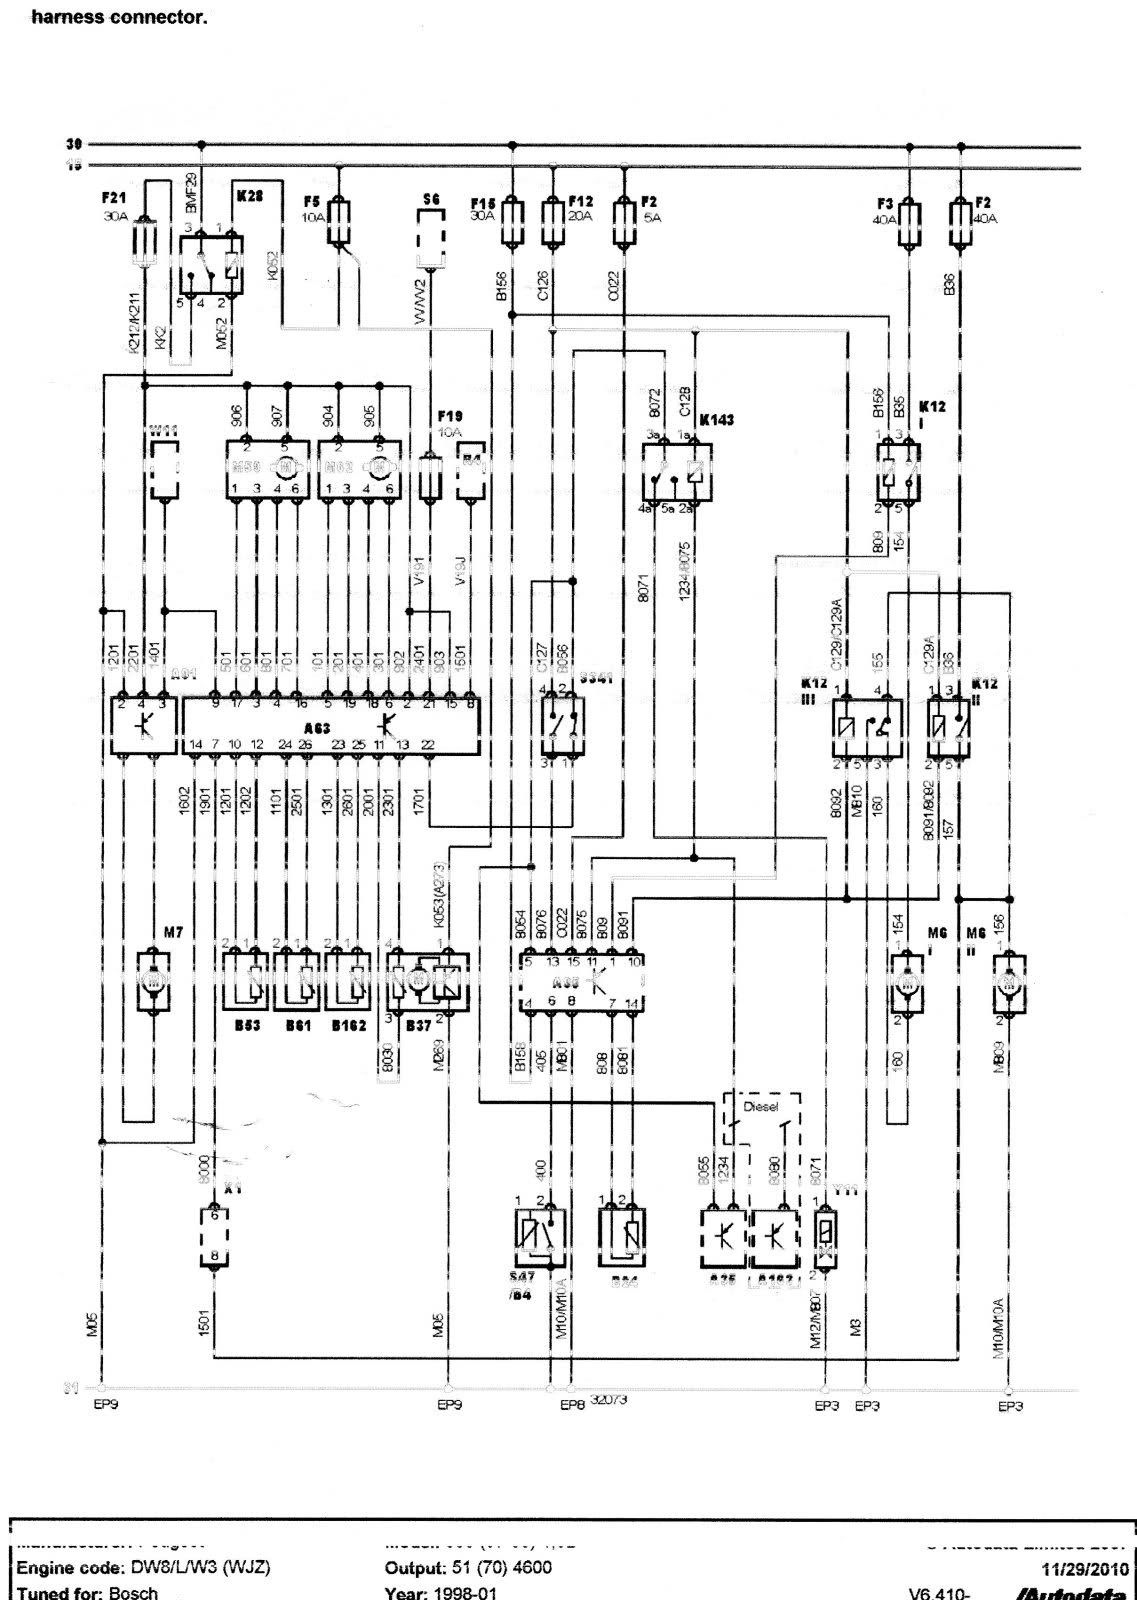 peugeot 206 wiring diagram 11 reinvent your wiring diagram u2022 rh  kismetcars co uk wiring diagram peugeot 307 sw peugeot 307 airbag wiring  diagram